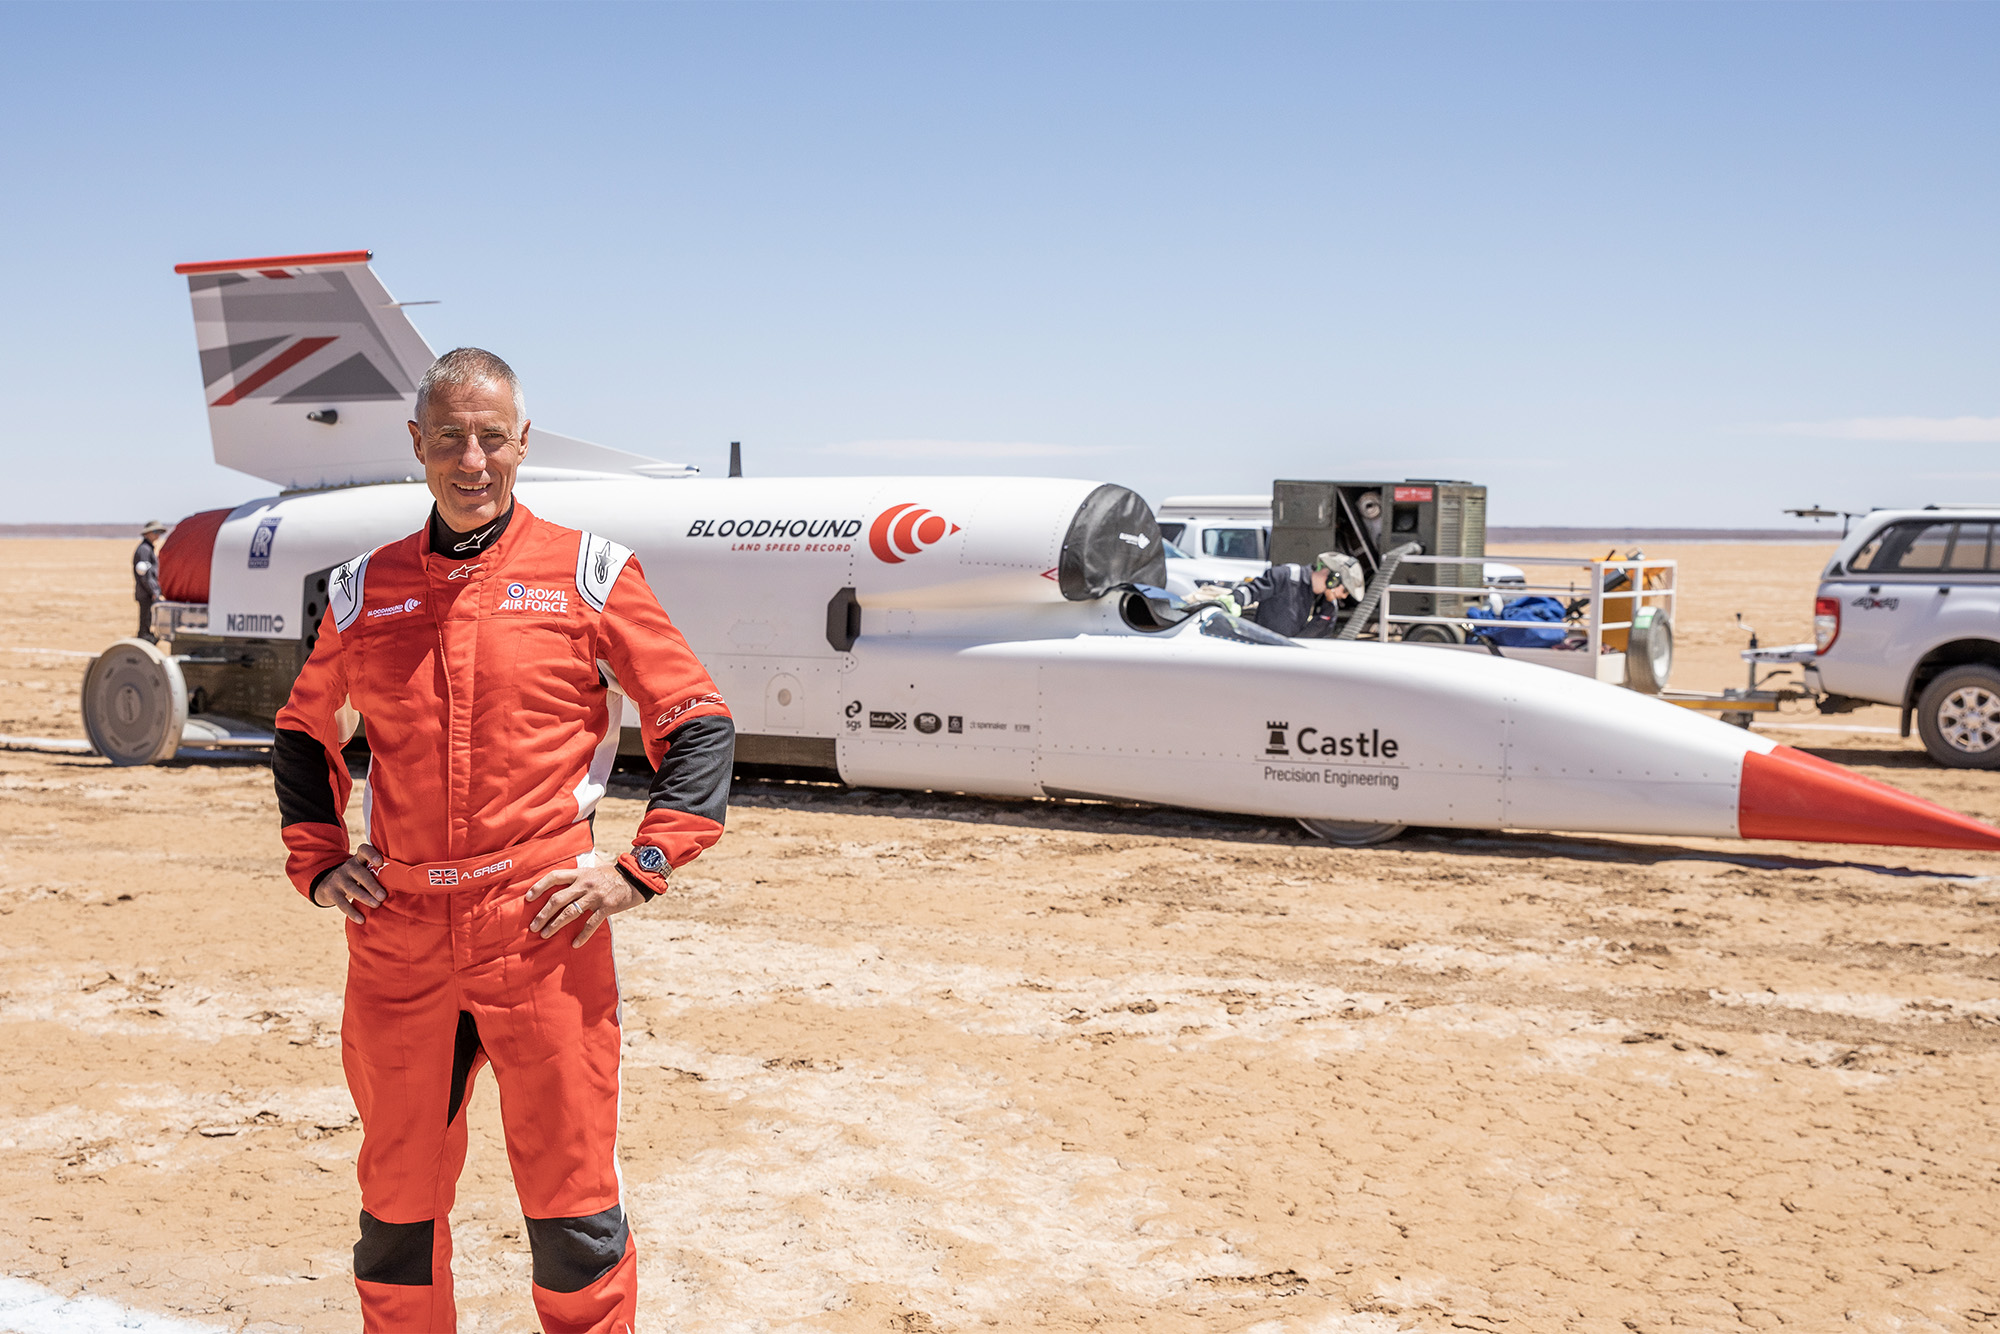 Andy Green, RAF Pilot and man behind the wheel of the Bloodhound LSR car